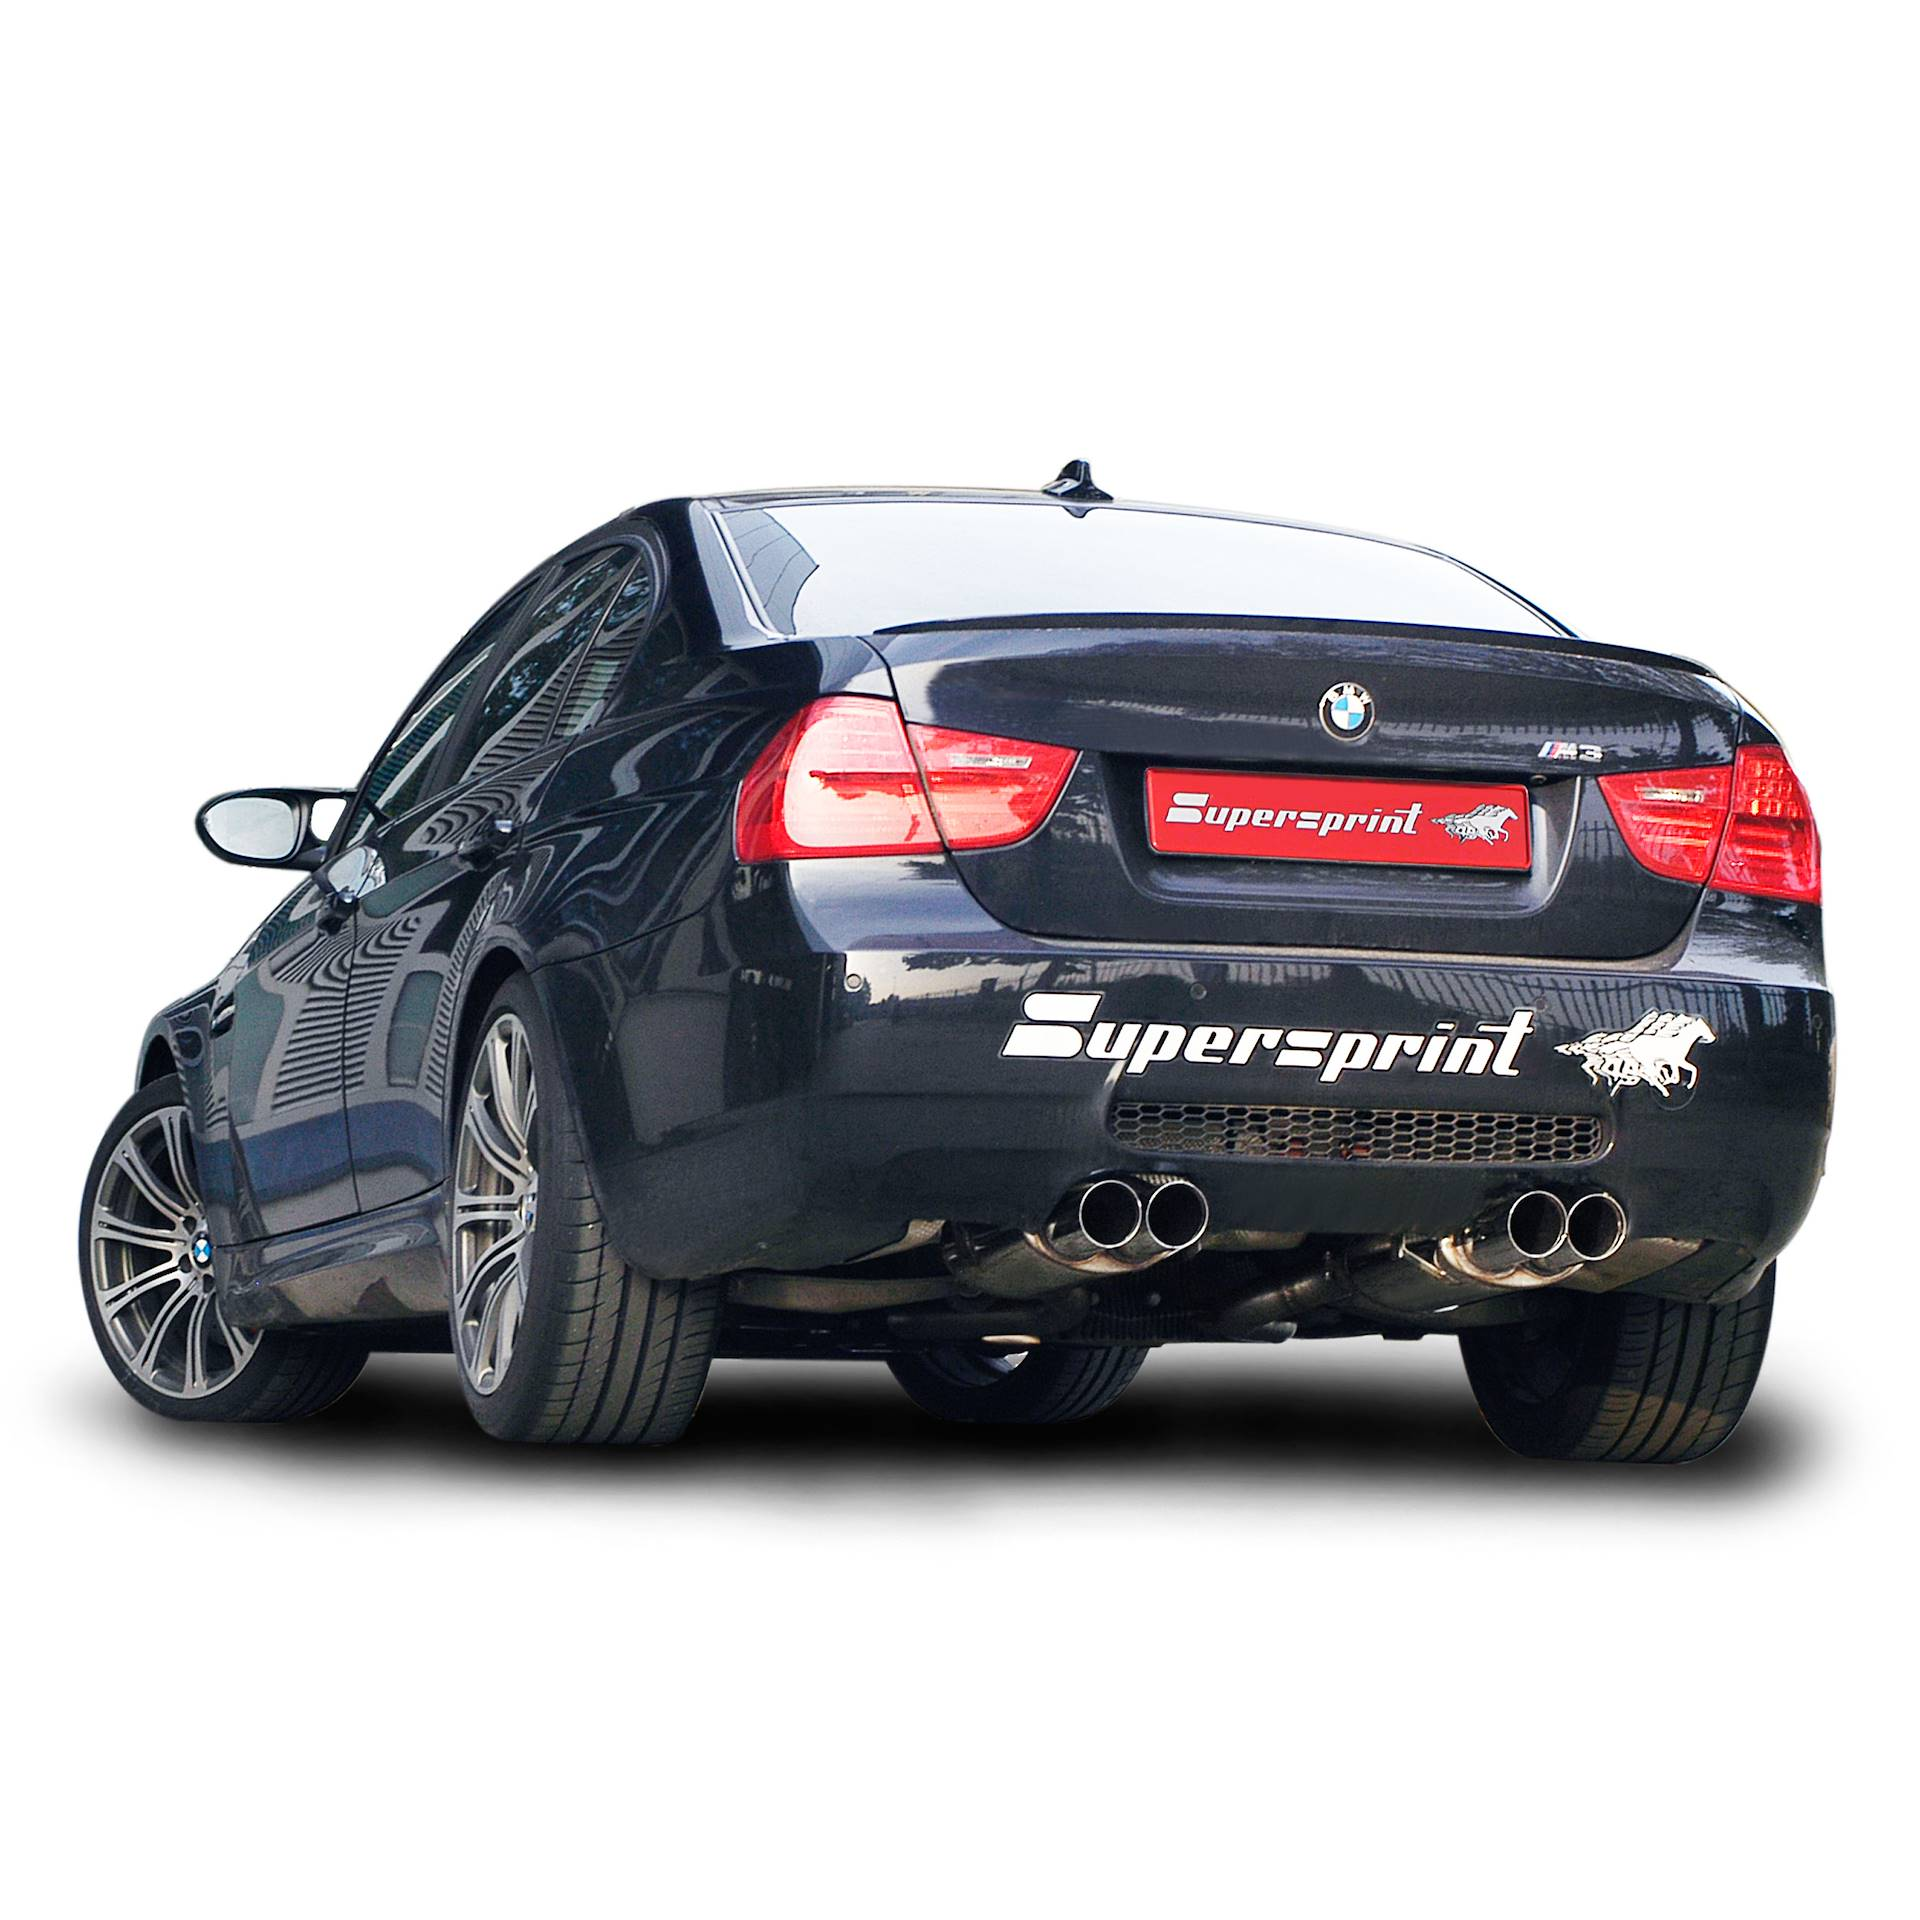 Bmw M3: Performance Sport Exhaust For BMW M3 E90 Supercharger, BMW